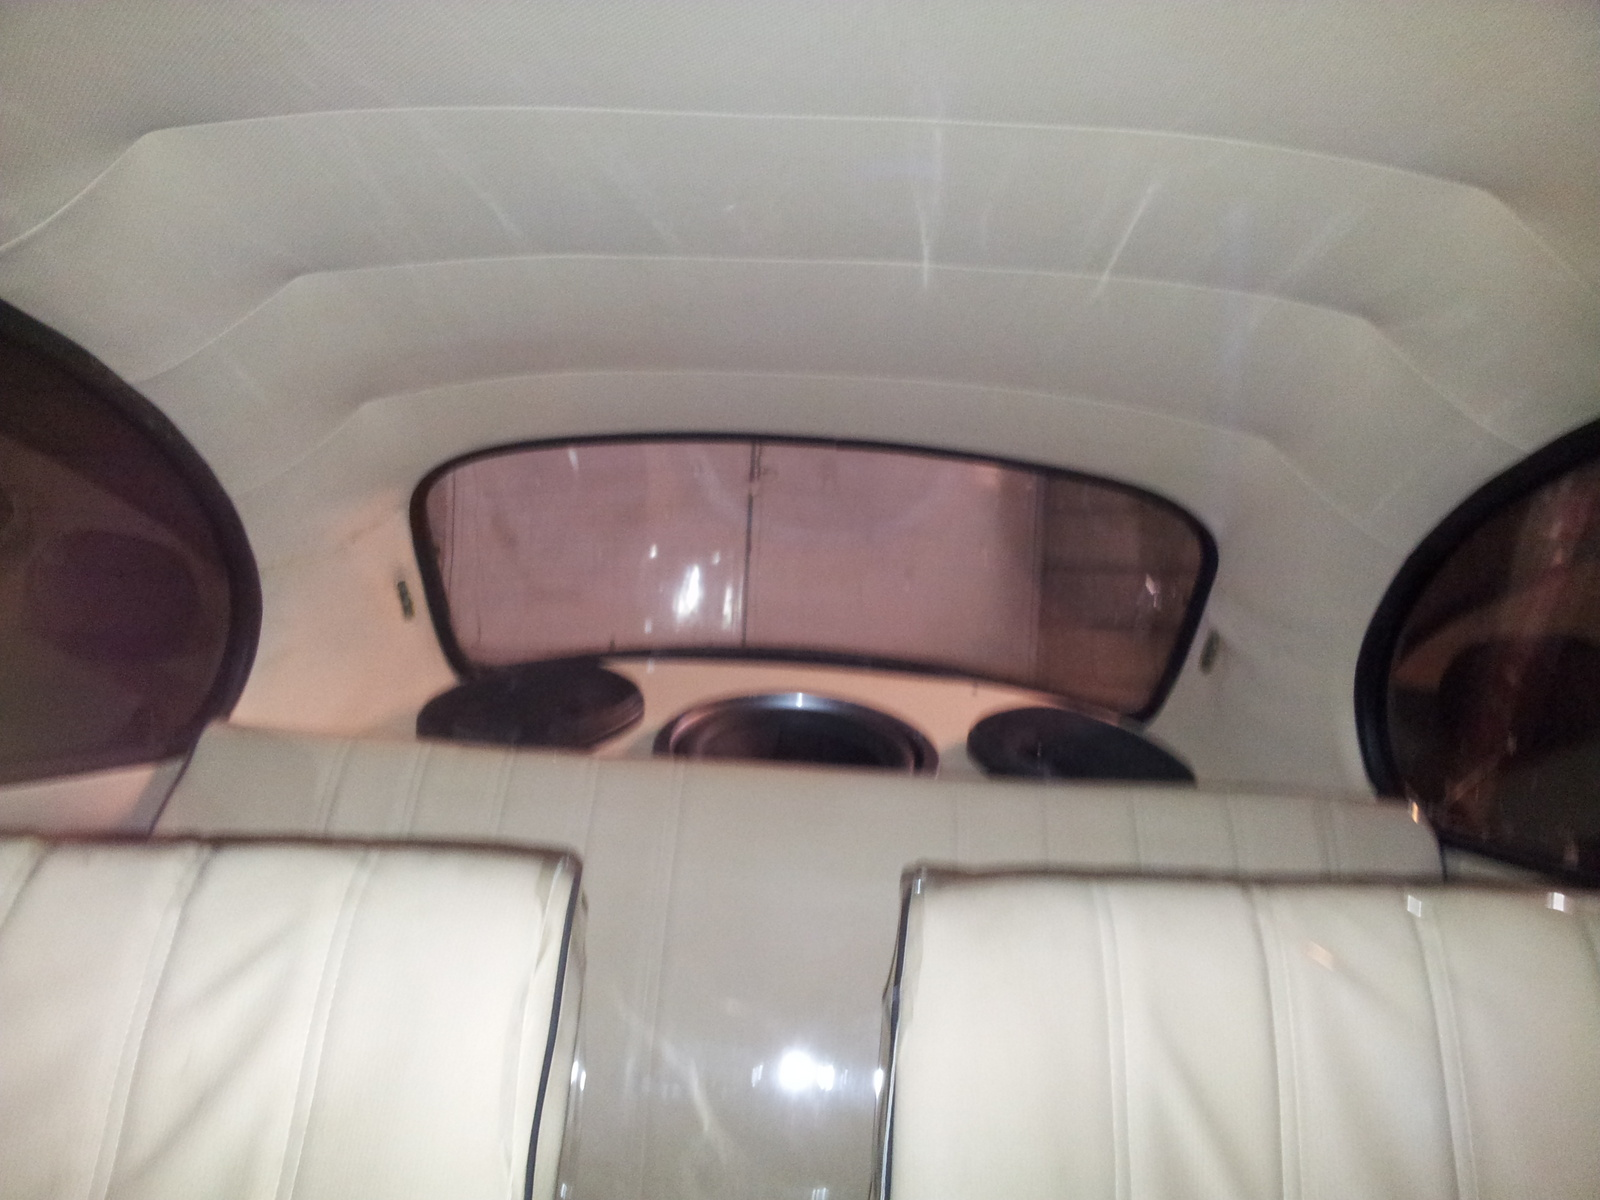 1973 Volkswagen Beetle picture, interior